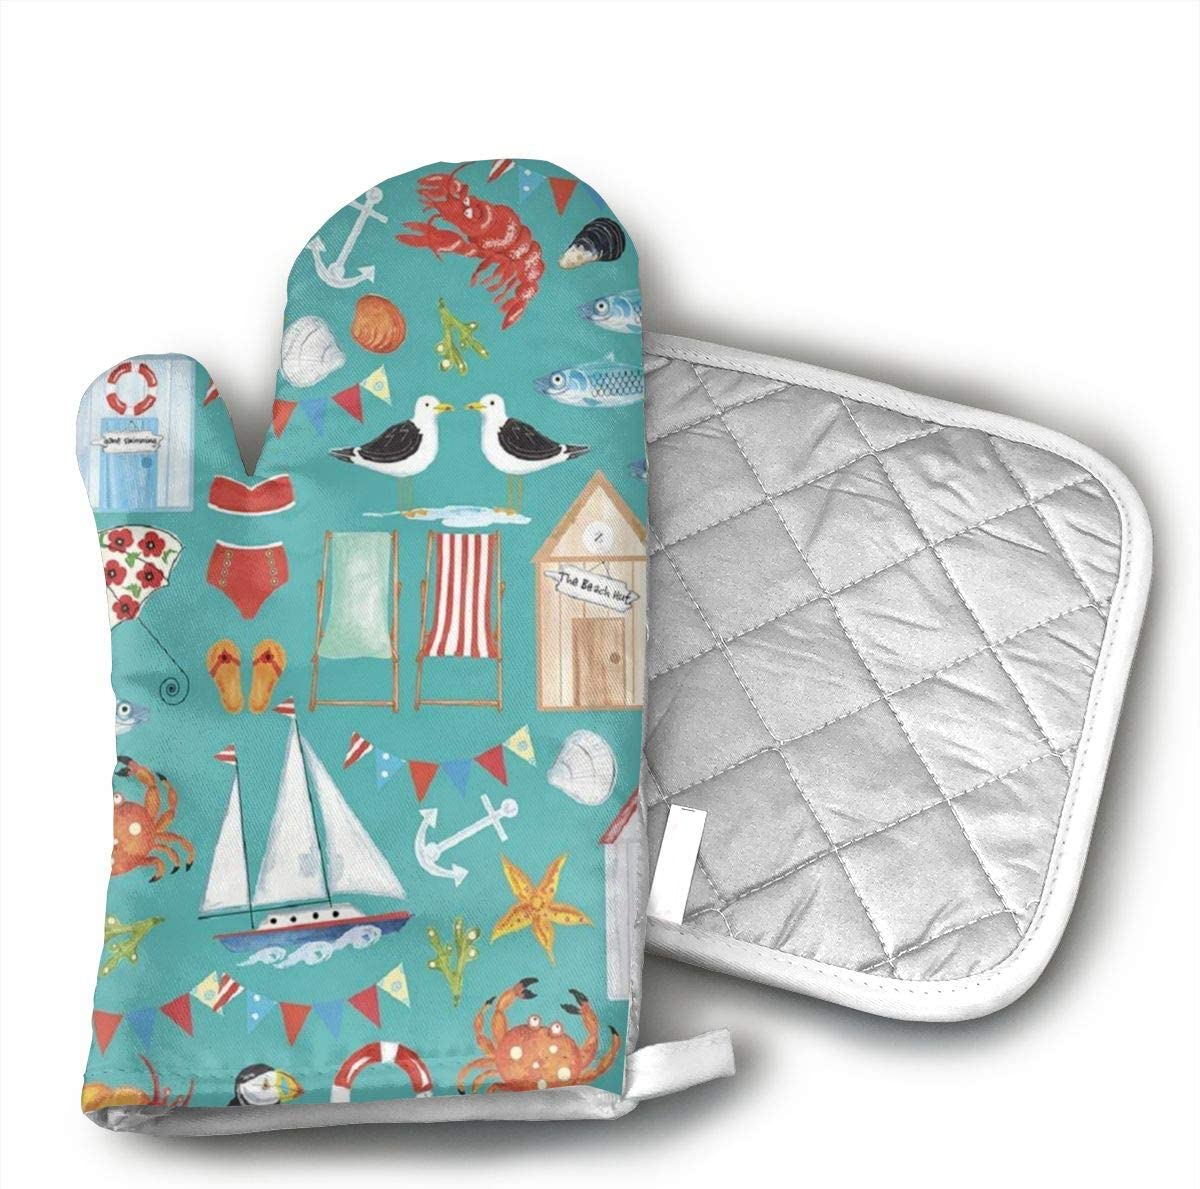 HGUIDHG Beachy Summer Oven Mitts+Insulated Square Mat,Heat Resistant Kitchen Gloves Soft Insulated Deep Pockets, Non-Slip Handles